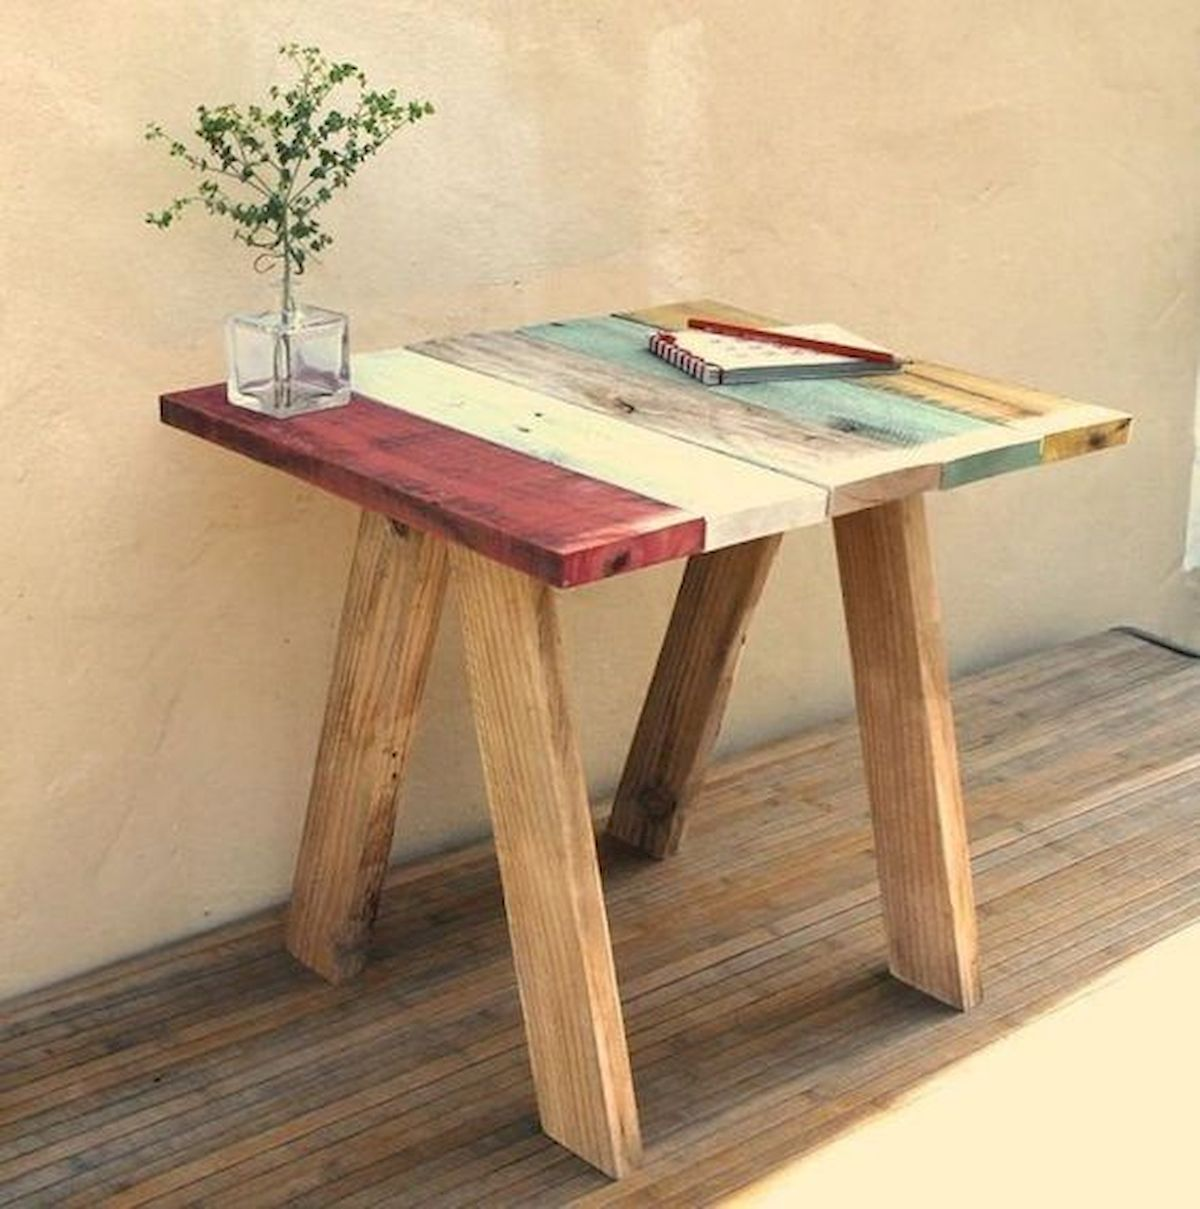 45 Easy and Cheap DIY Wood Furniture Ideas for Small House (4)